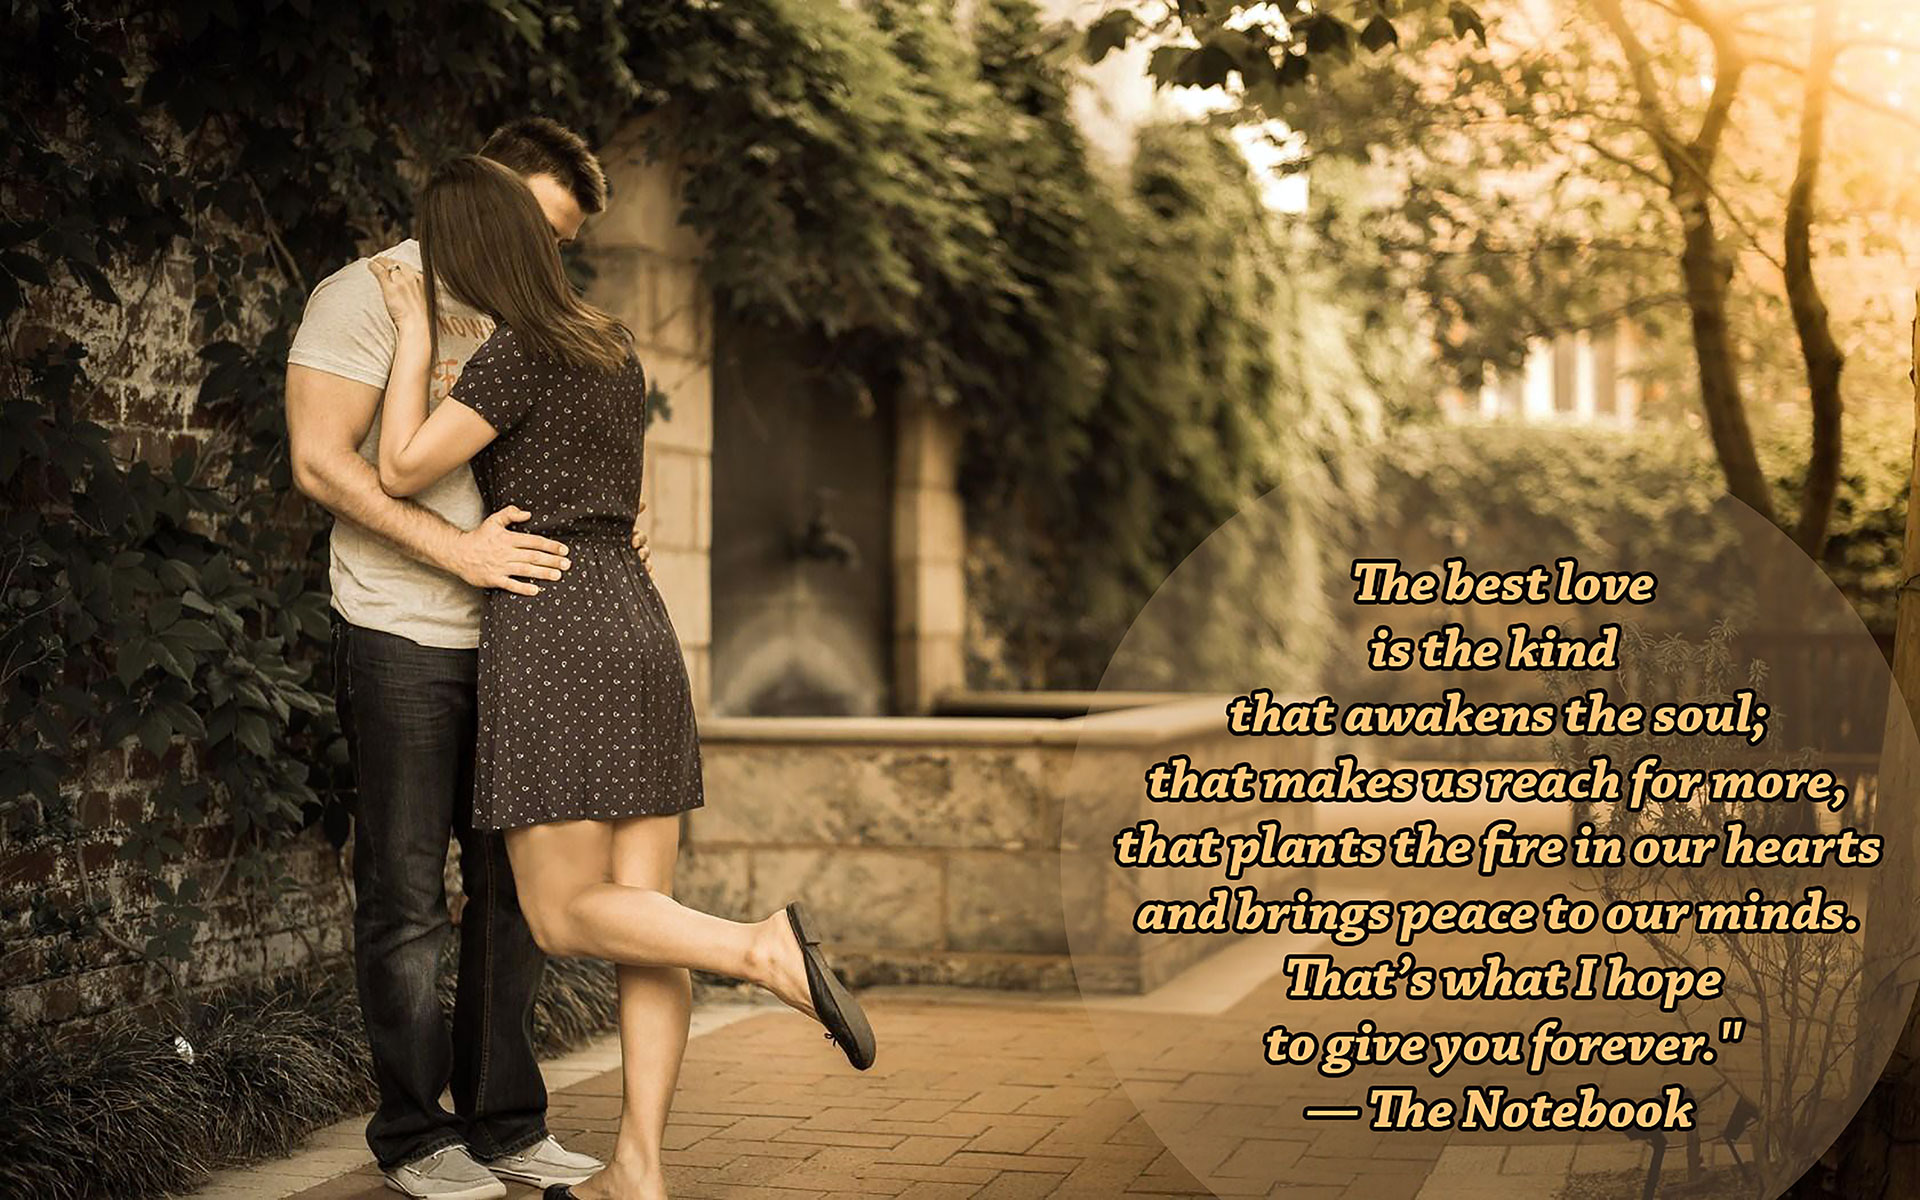 Love Quotes For Couples 20 Love Quotes Wallpaper Romantic Couple Images With Quotes